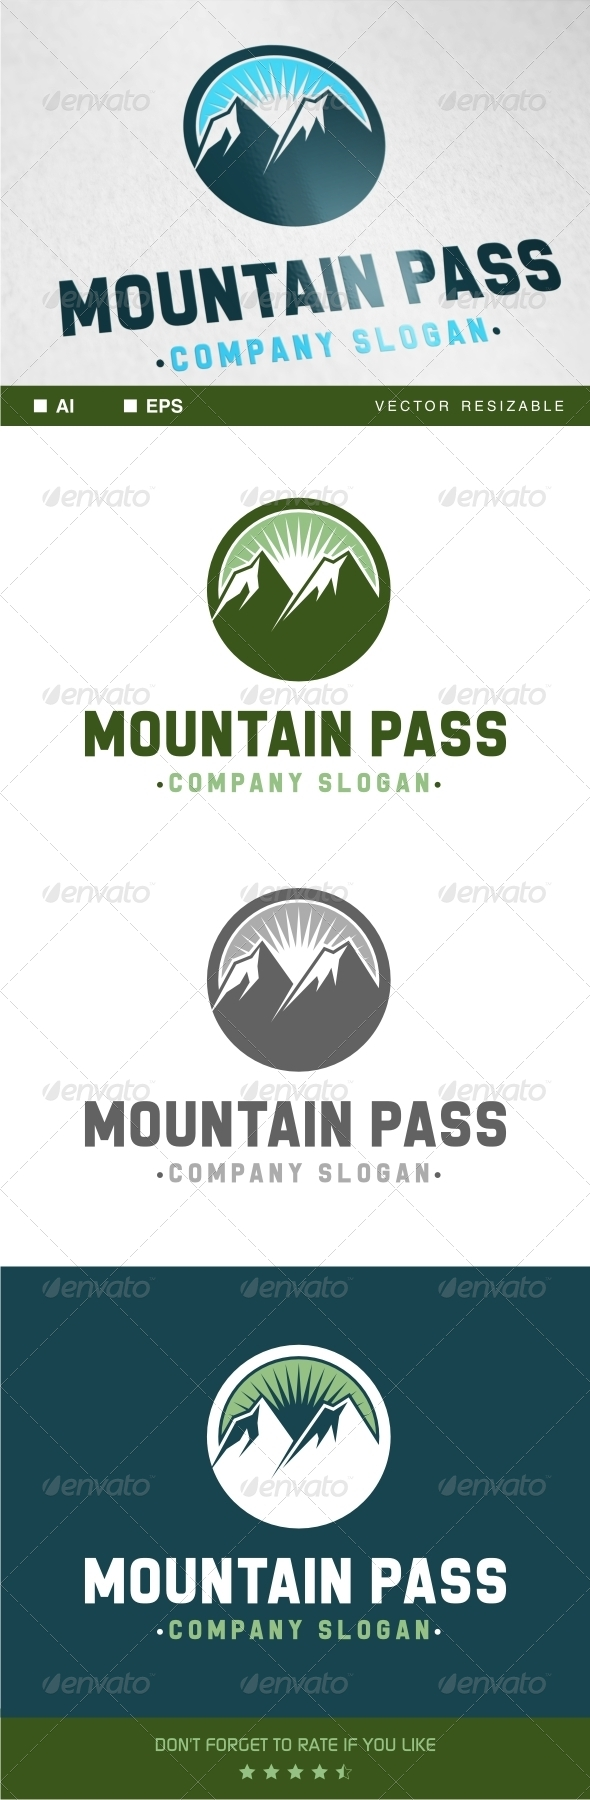 Mountain Pass Logo